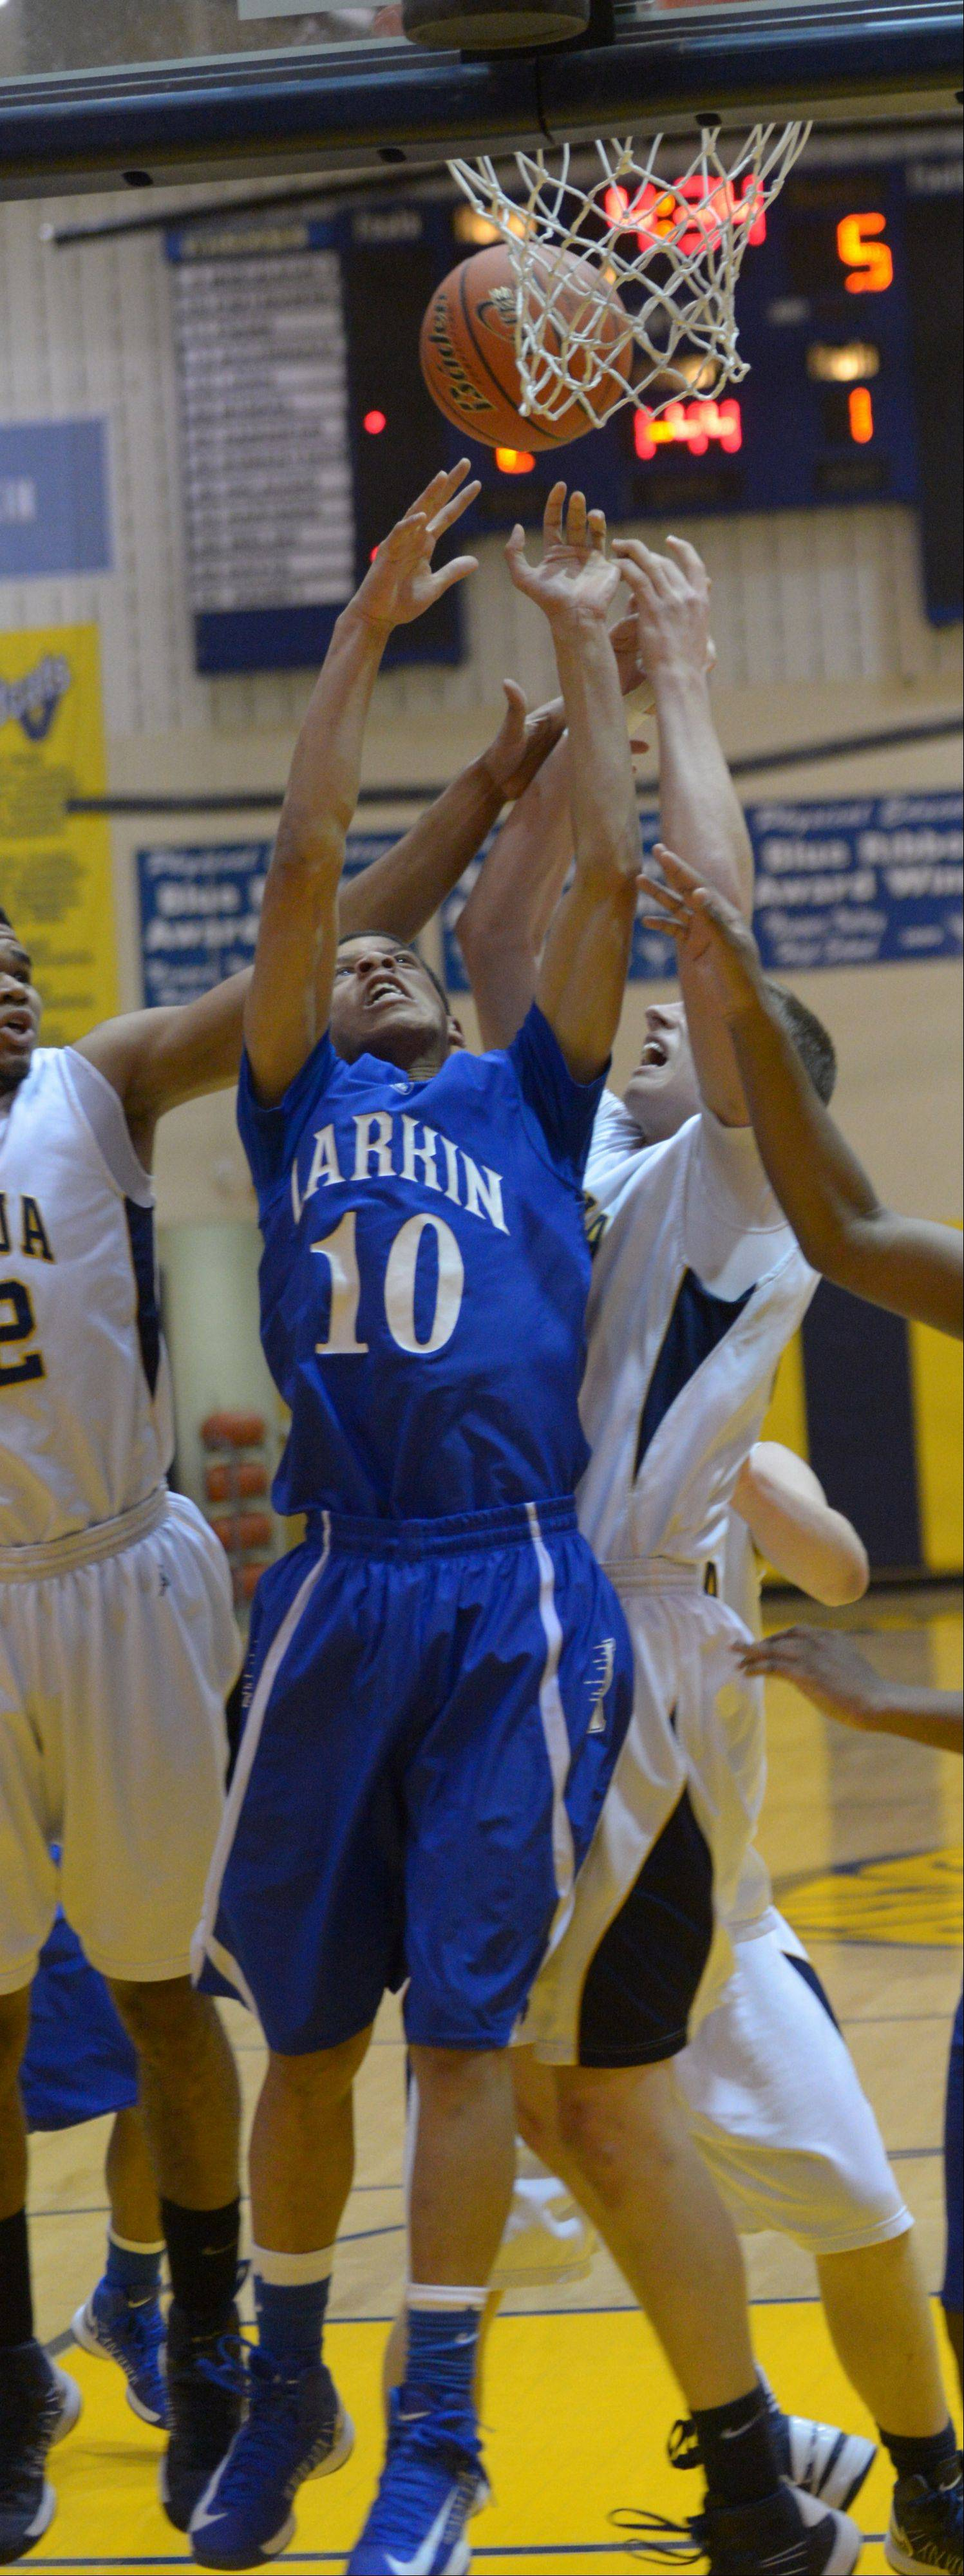 Kendale McCullum of Larkin goes up for a rebound.